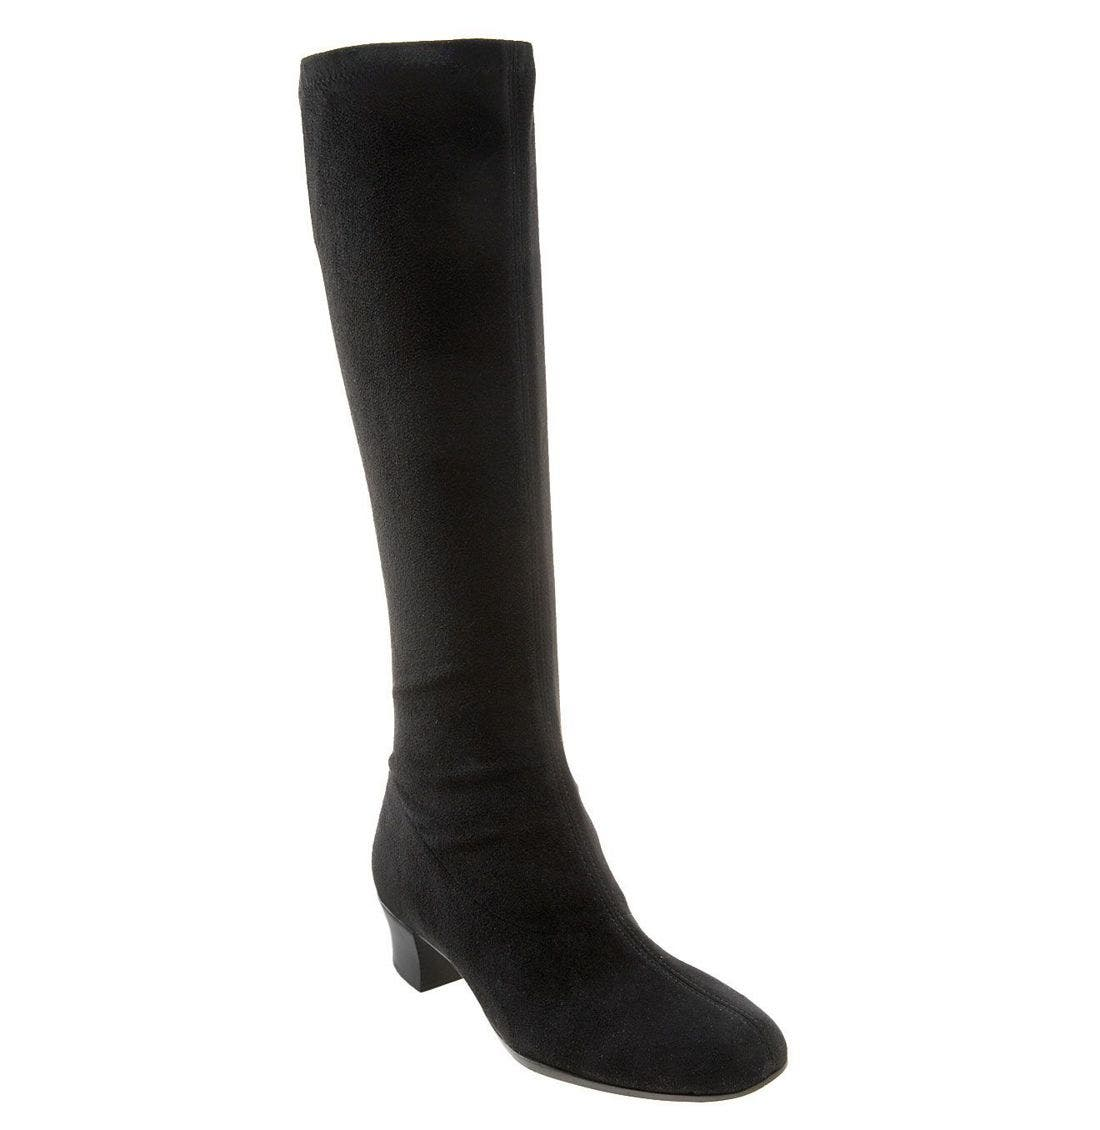 Alternate Image 1 Selected - Munro 'Samantha' Tall Stretch Boot